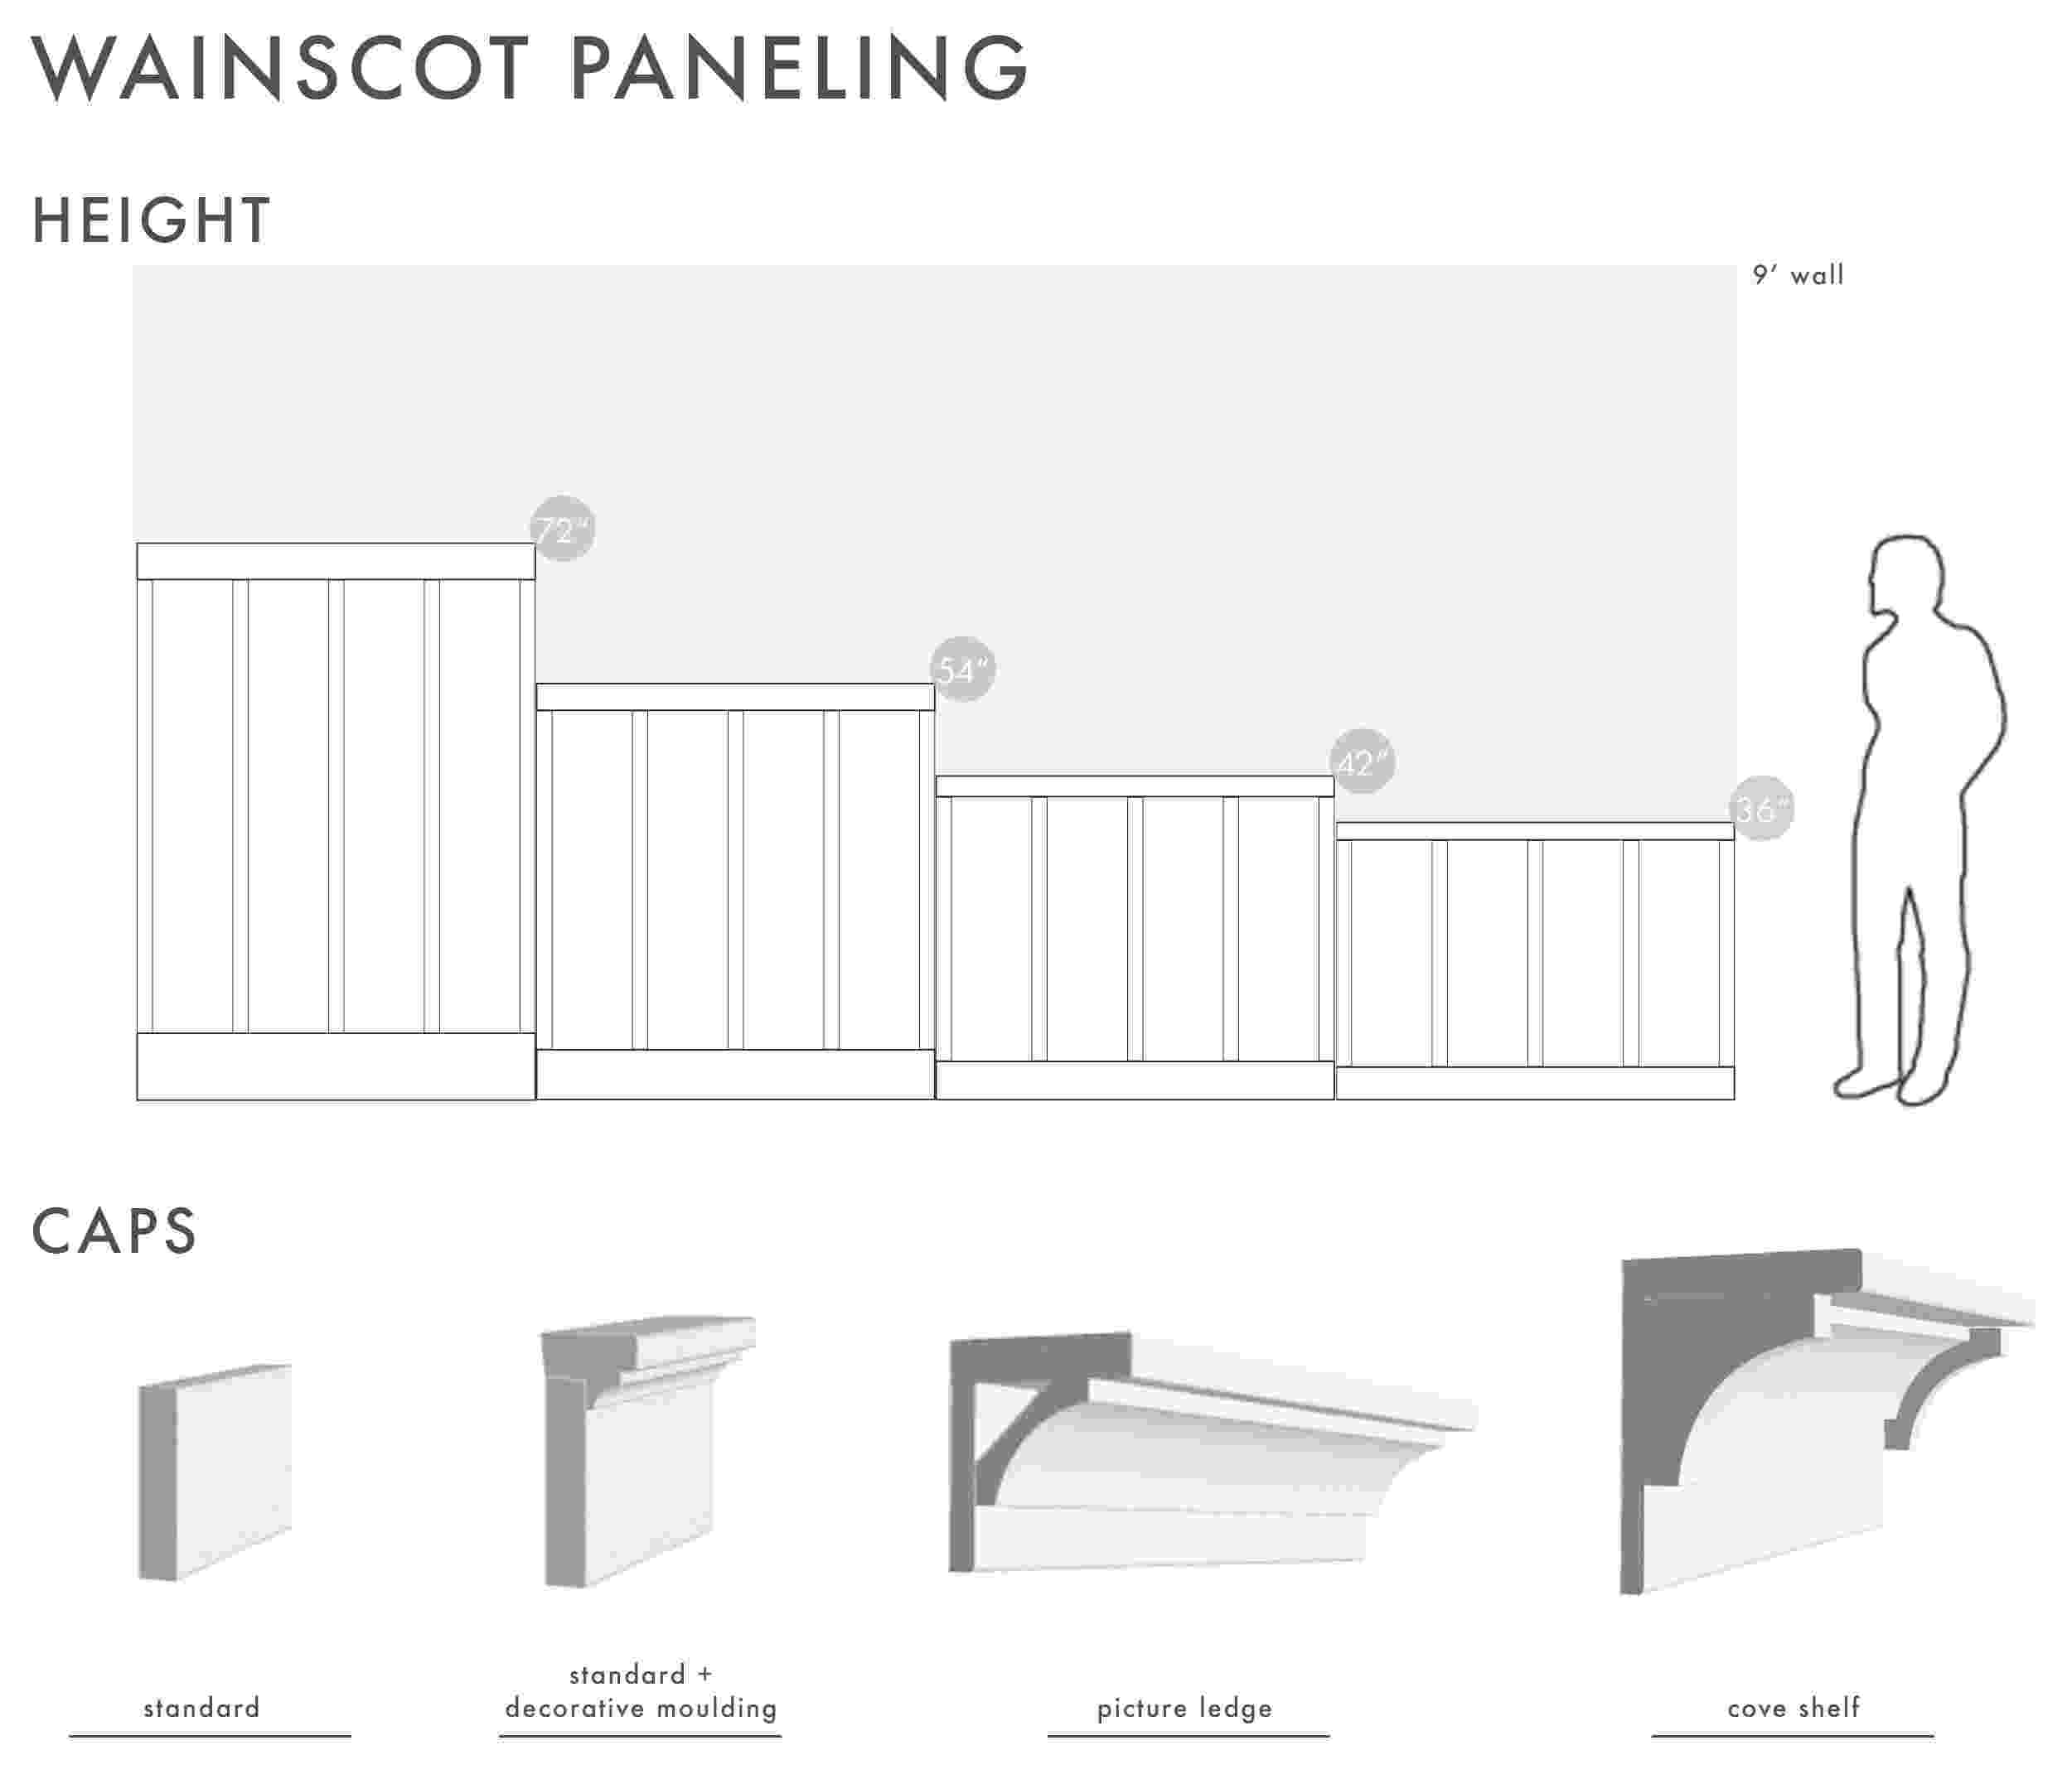 color ideas painting old chairs chair rail and wainscoting ideas simple house plans the old ideas chairs color painting